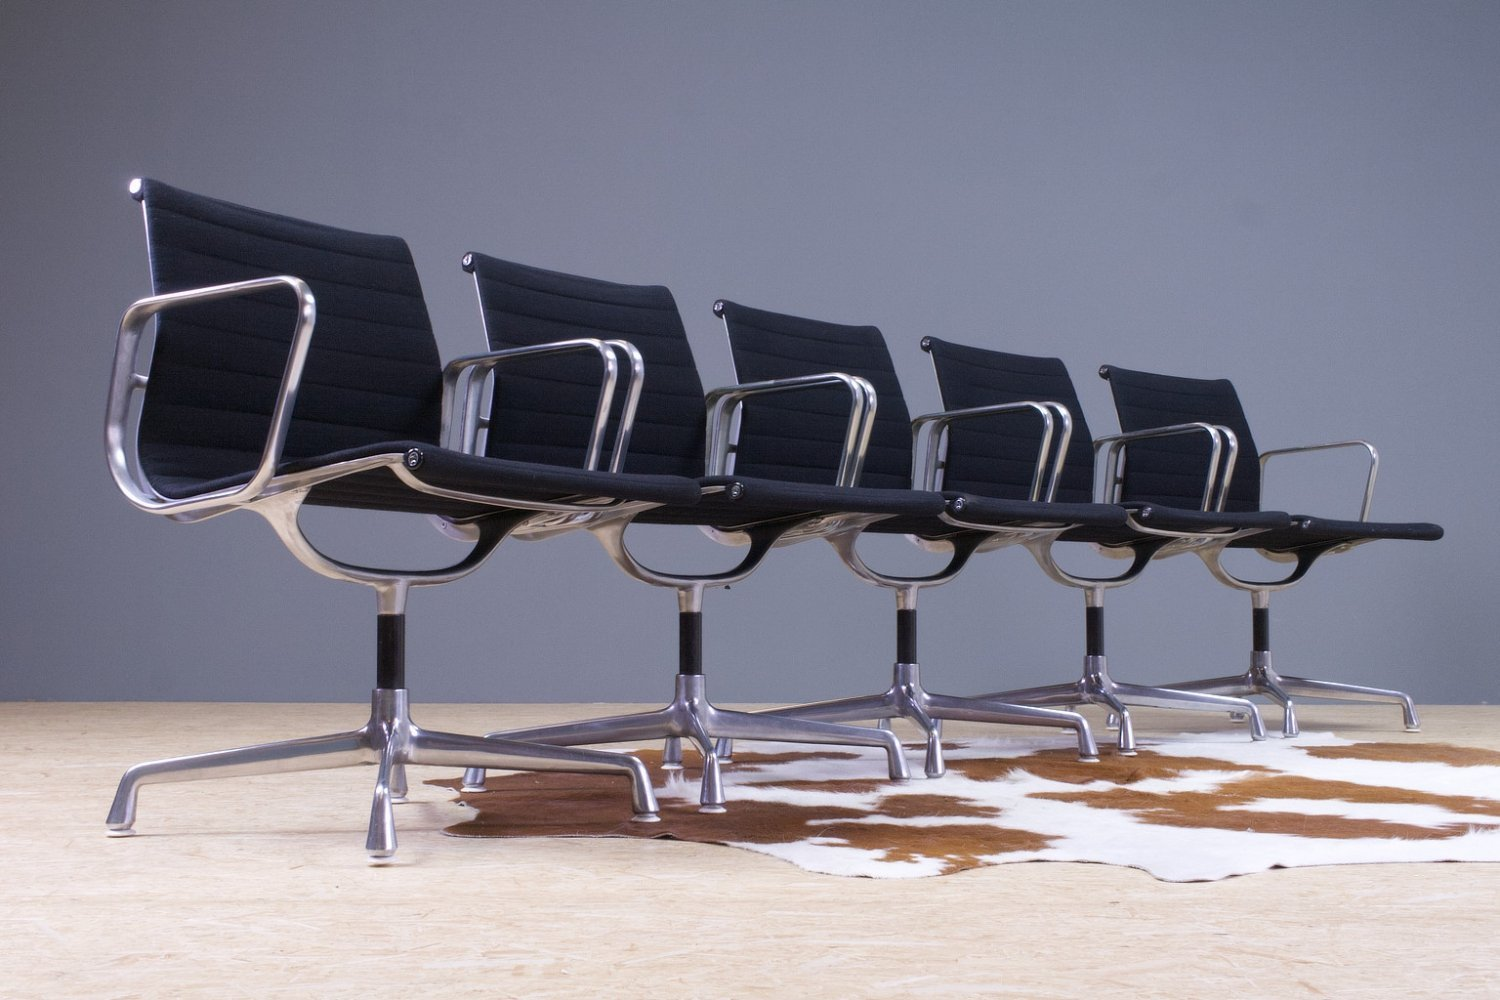 EA107 Eames set of 5 chairs in black by Herman Miller, USA 1970s